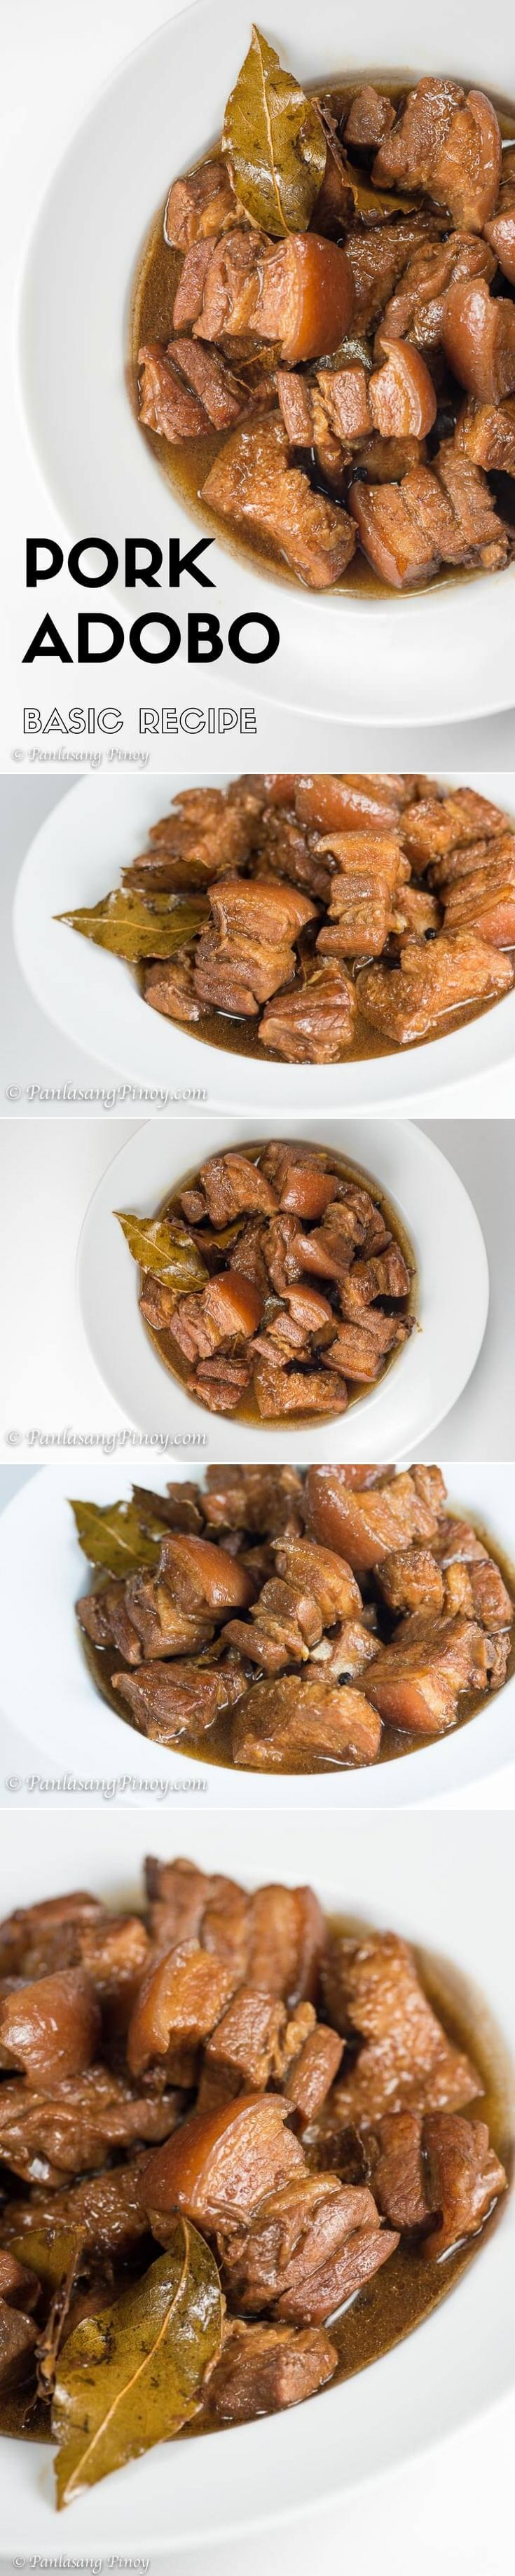 This basic pork adobo recipe shows my own way of cooking pork adobo. It depicts how I make this dish using core ingredients. Note that this method might not be the same as the traditional way, but its result has always been good